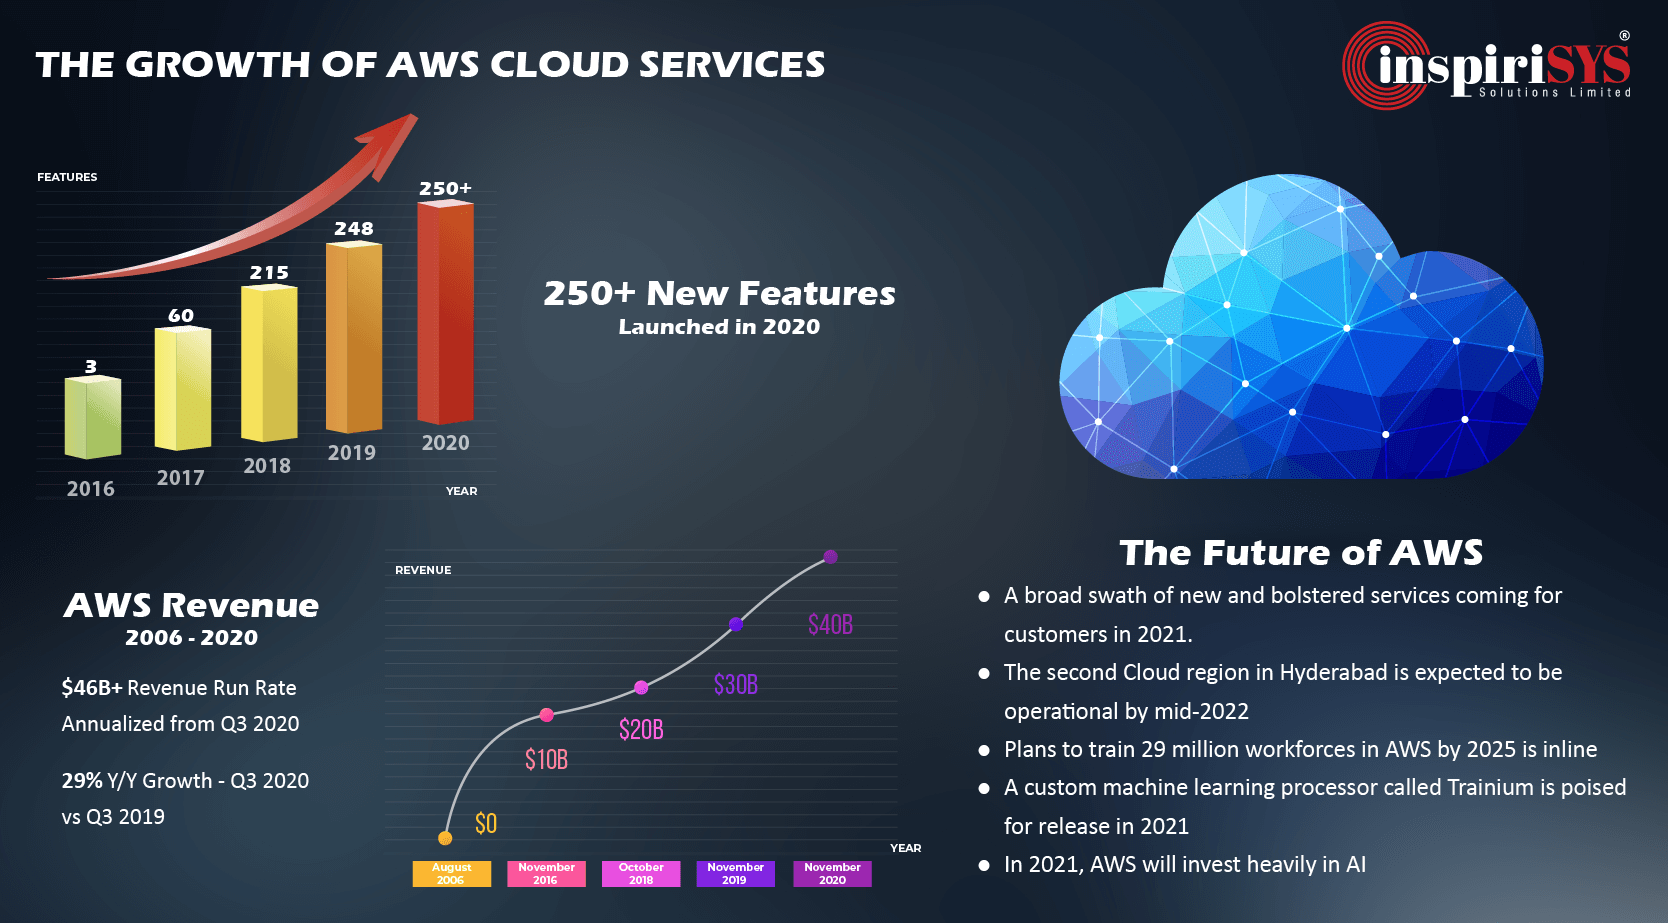 The Growth of AWS Cloud Services - Features, Revenue and Predictions